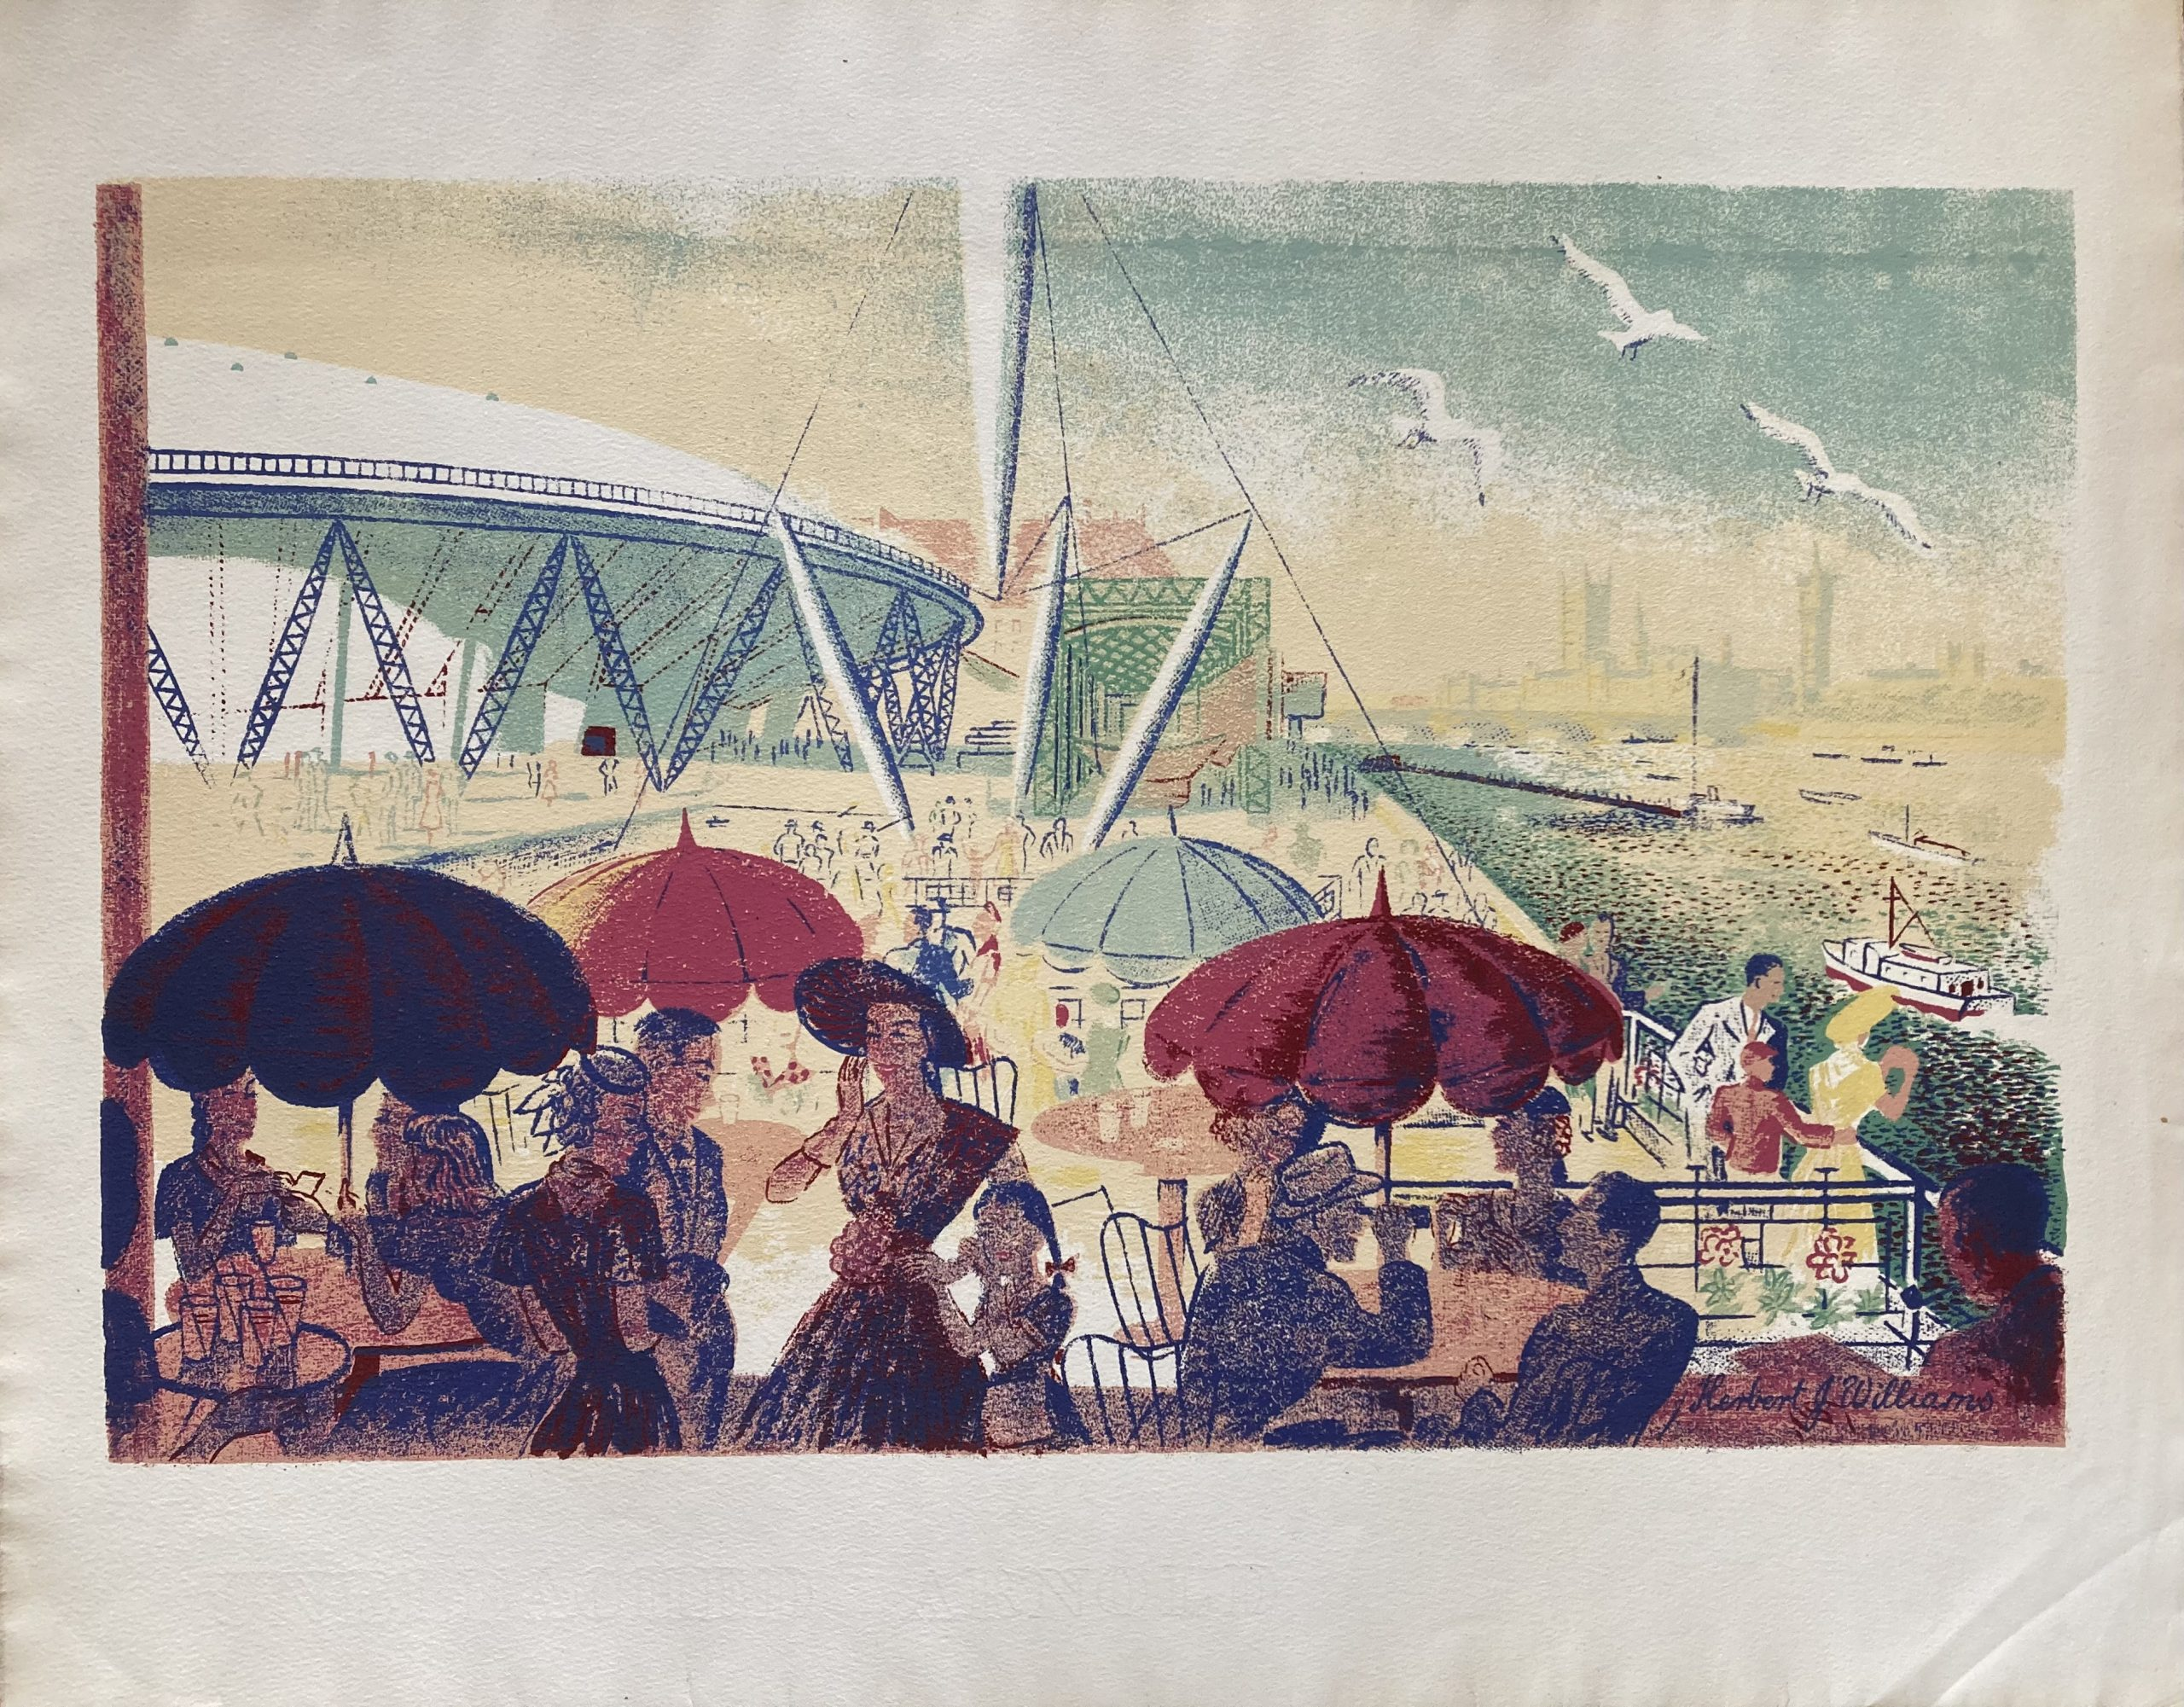 Lithograph for Festival of Britain